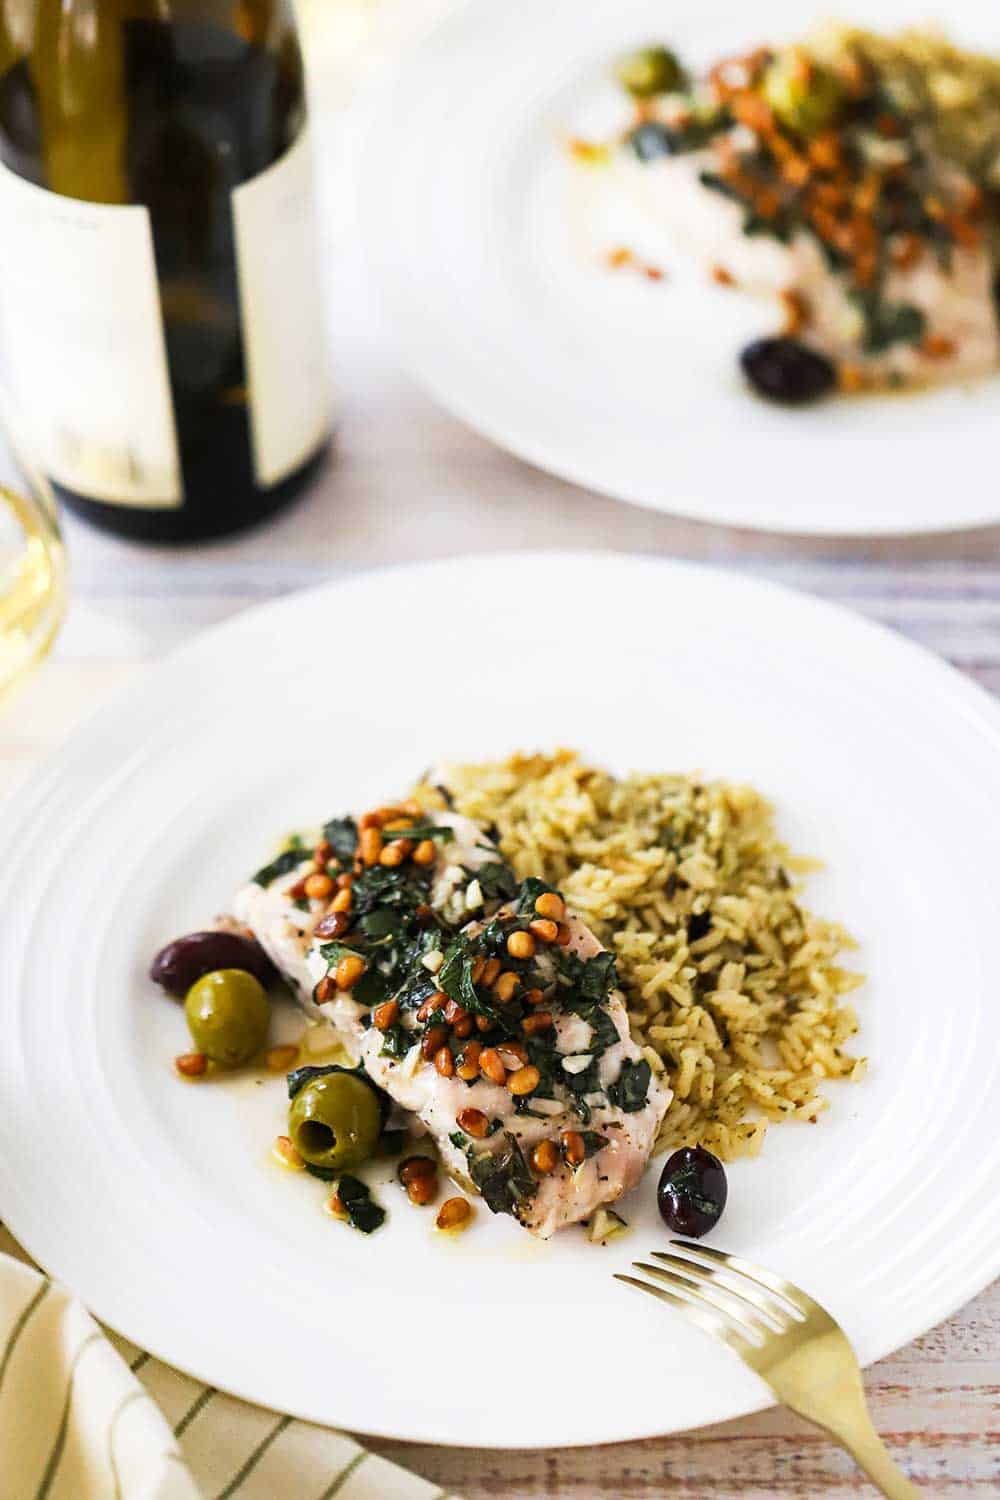 Two white dinner plates filled with Mediterranean-style baked red snapper and a mound of cooked wild rice, both sitting next to a bottle of wine.